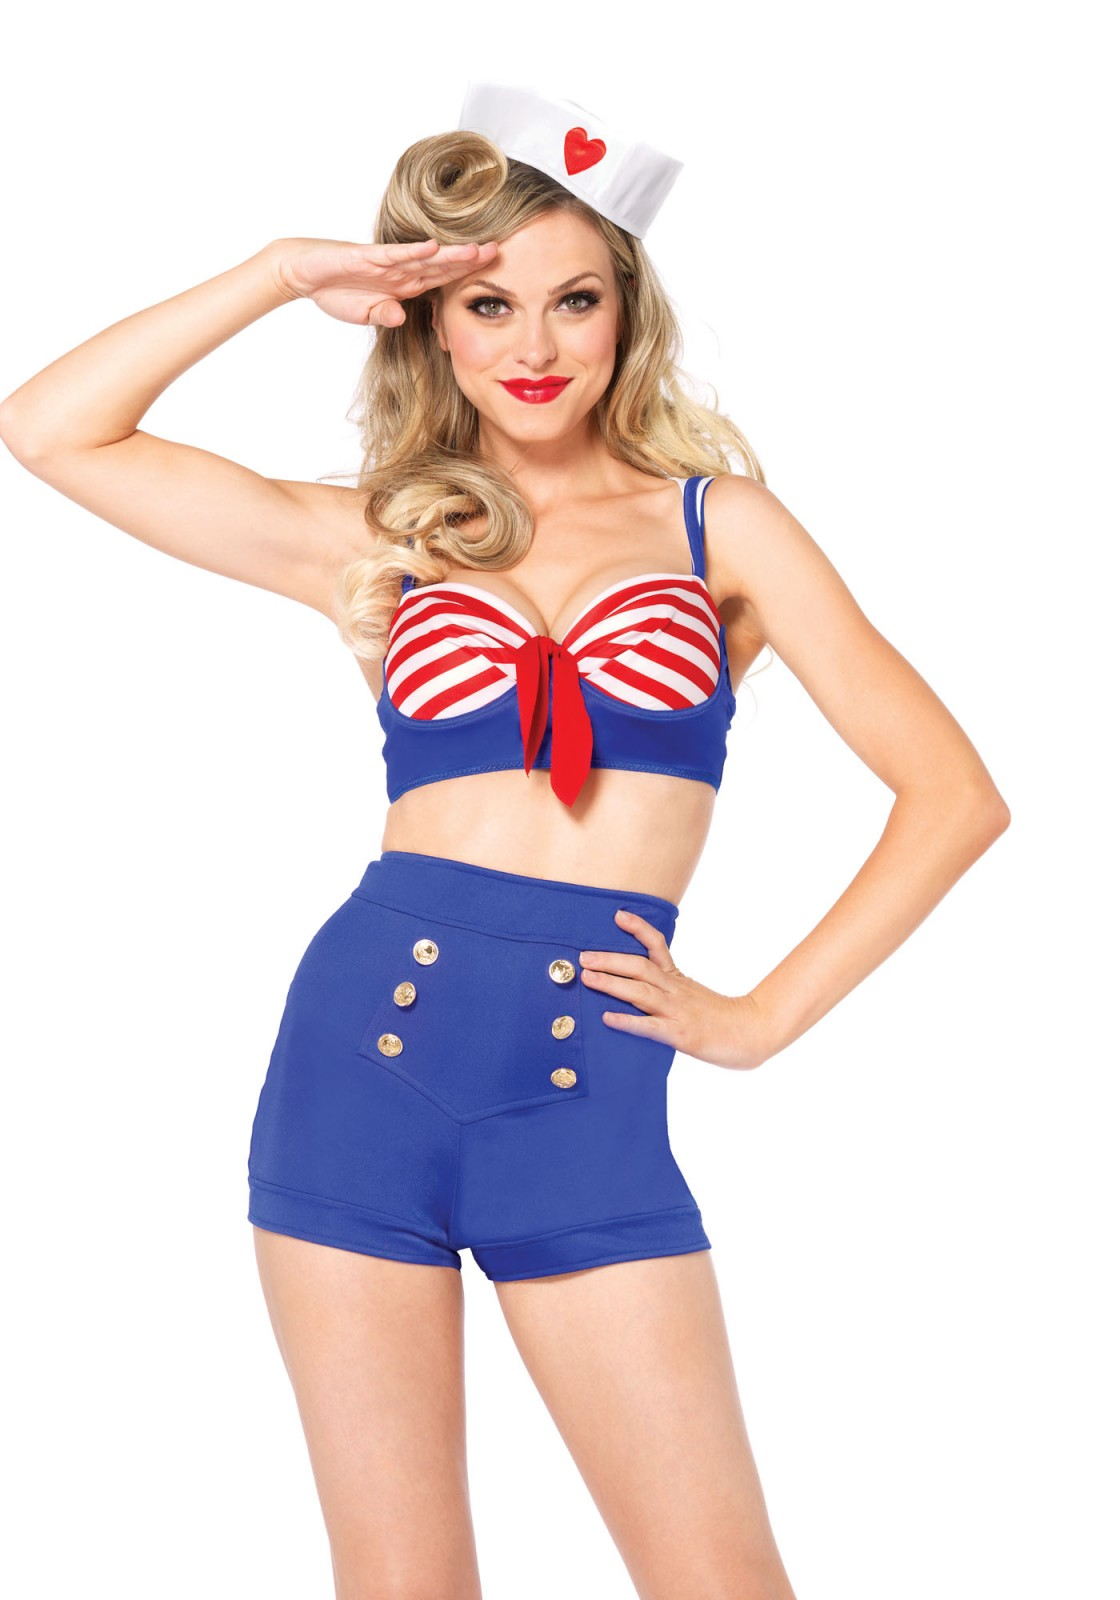 All hands on deck! With this costume everyone is willing to help. The set includes a underwire bra top with neckerchief back accent, high waist shorts with nautical button detail and matching sailor hat. This costume runs small. When in doubt we recommend to go one size up.